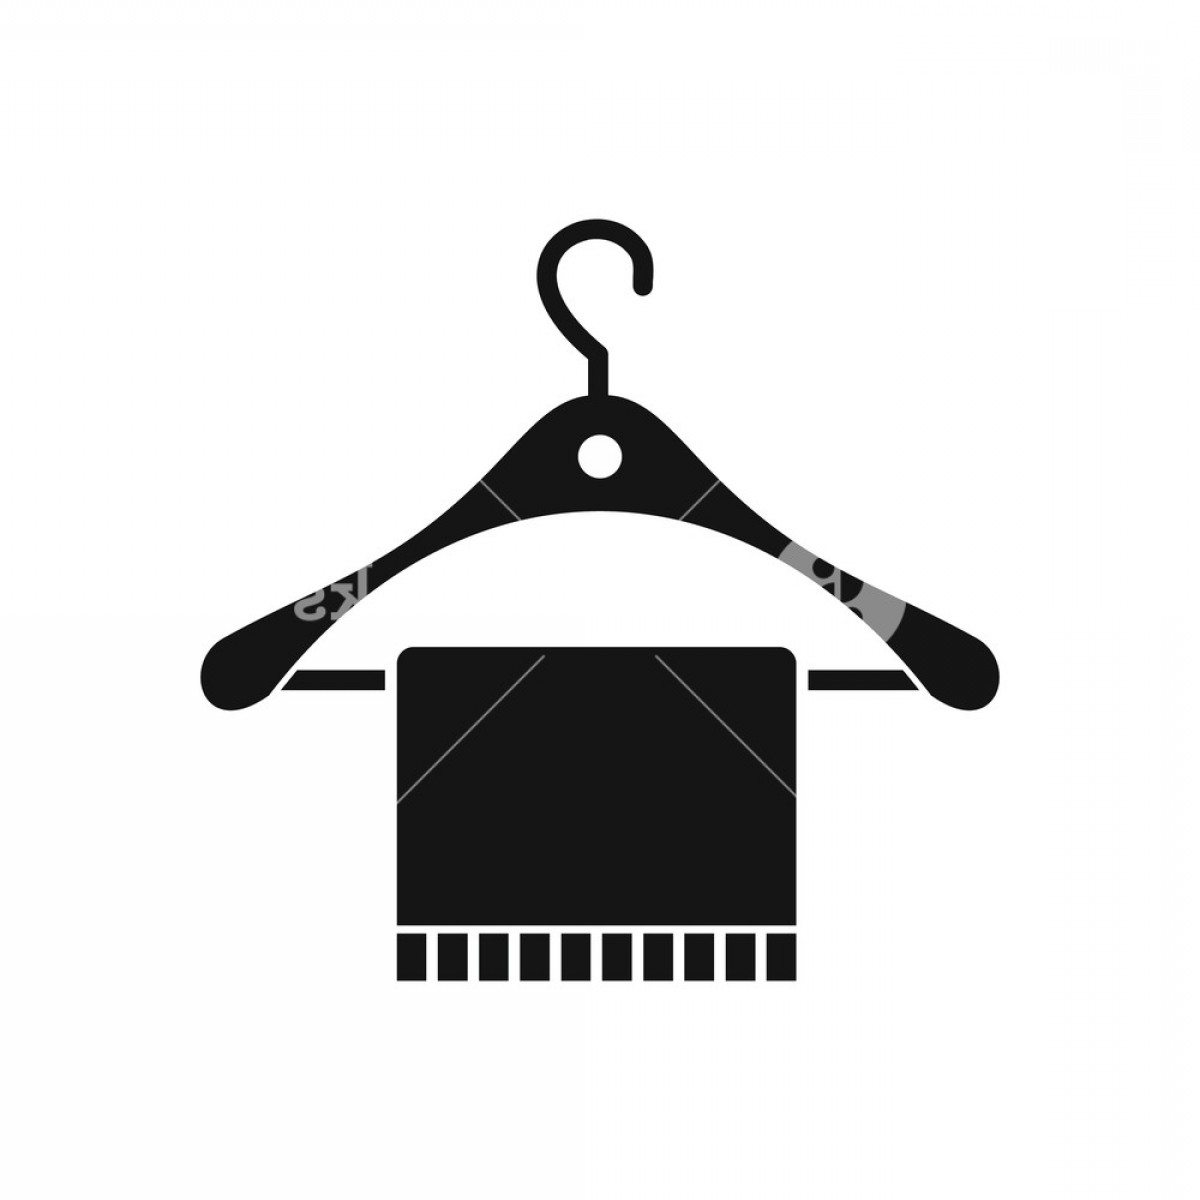 Shirt Hanger Icon Vector: Scarf On Coat Hanger Icon In Simple Style On A White Background Vector Illustration Rtm Mjhi